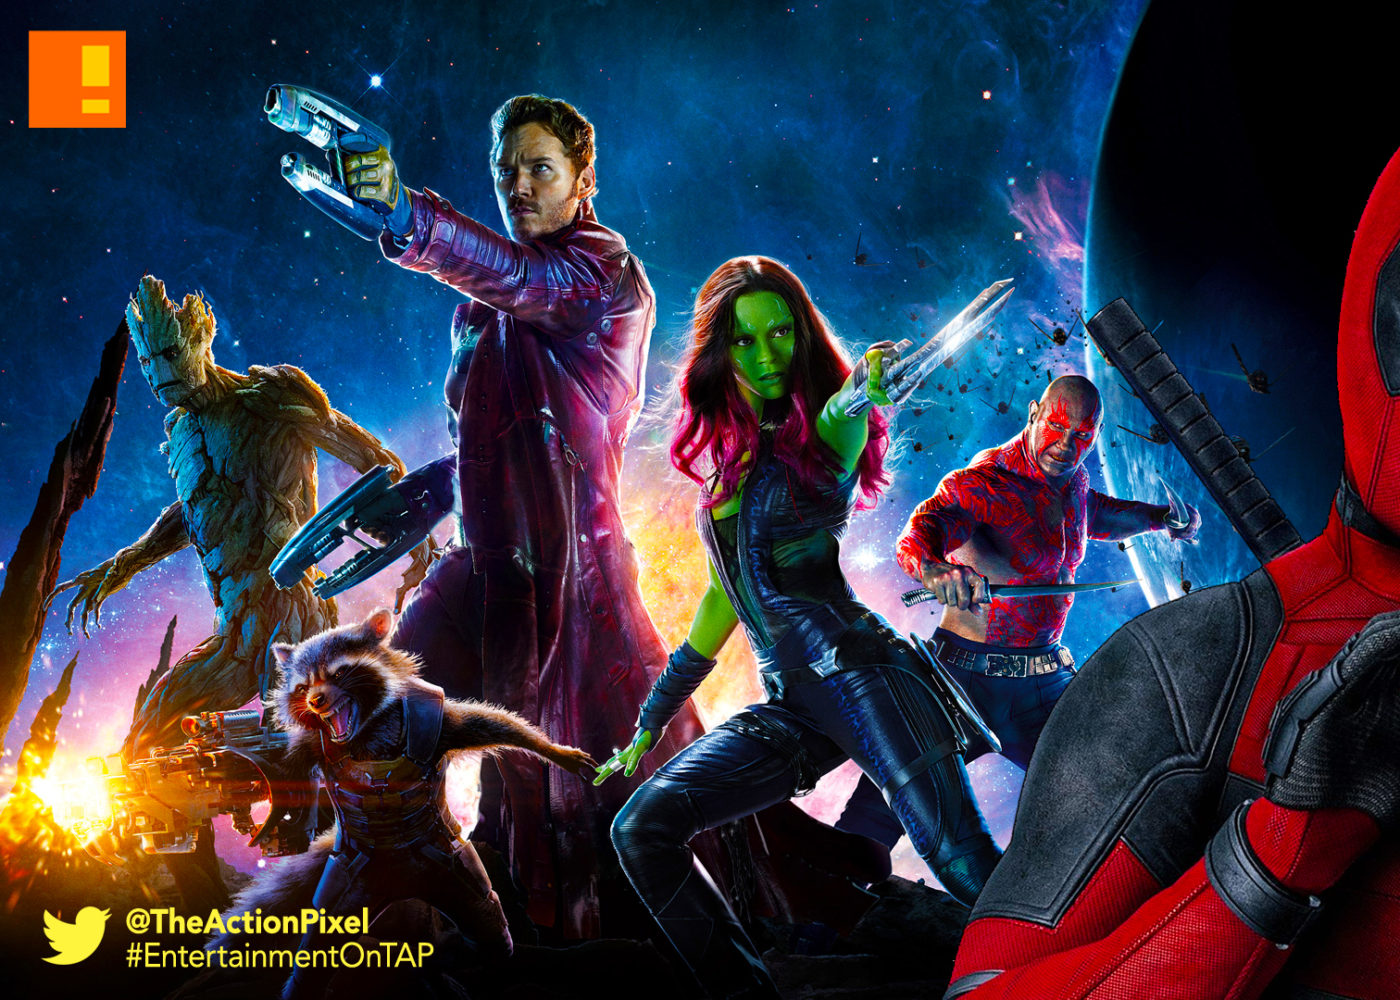 deadpool,gotg,marvel,fox, guardians, guardians of the galaxy, guardians of the galaxy vol 2, guardians of the galaxy vol. 2, marvel studios ,marvel comics, 20th century fox, the action pixel, entertainment on tap